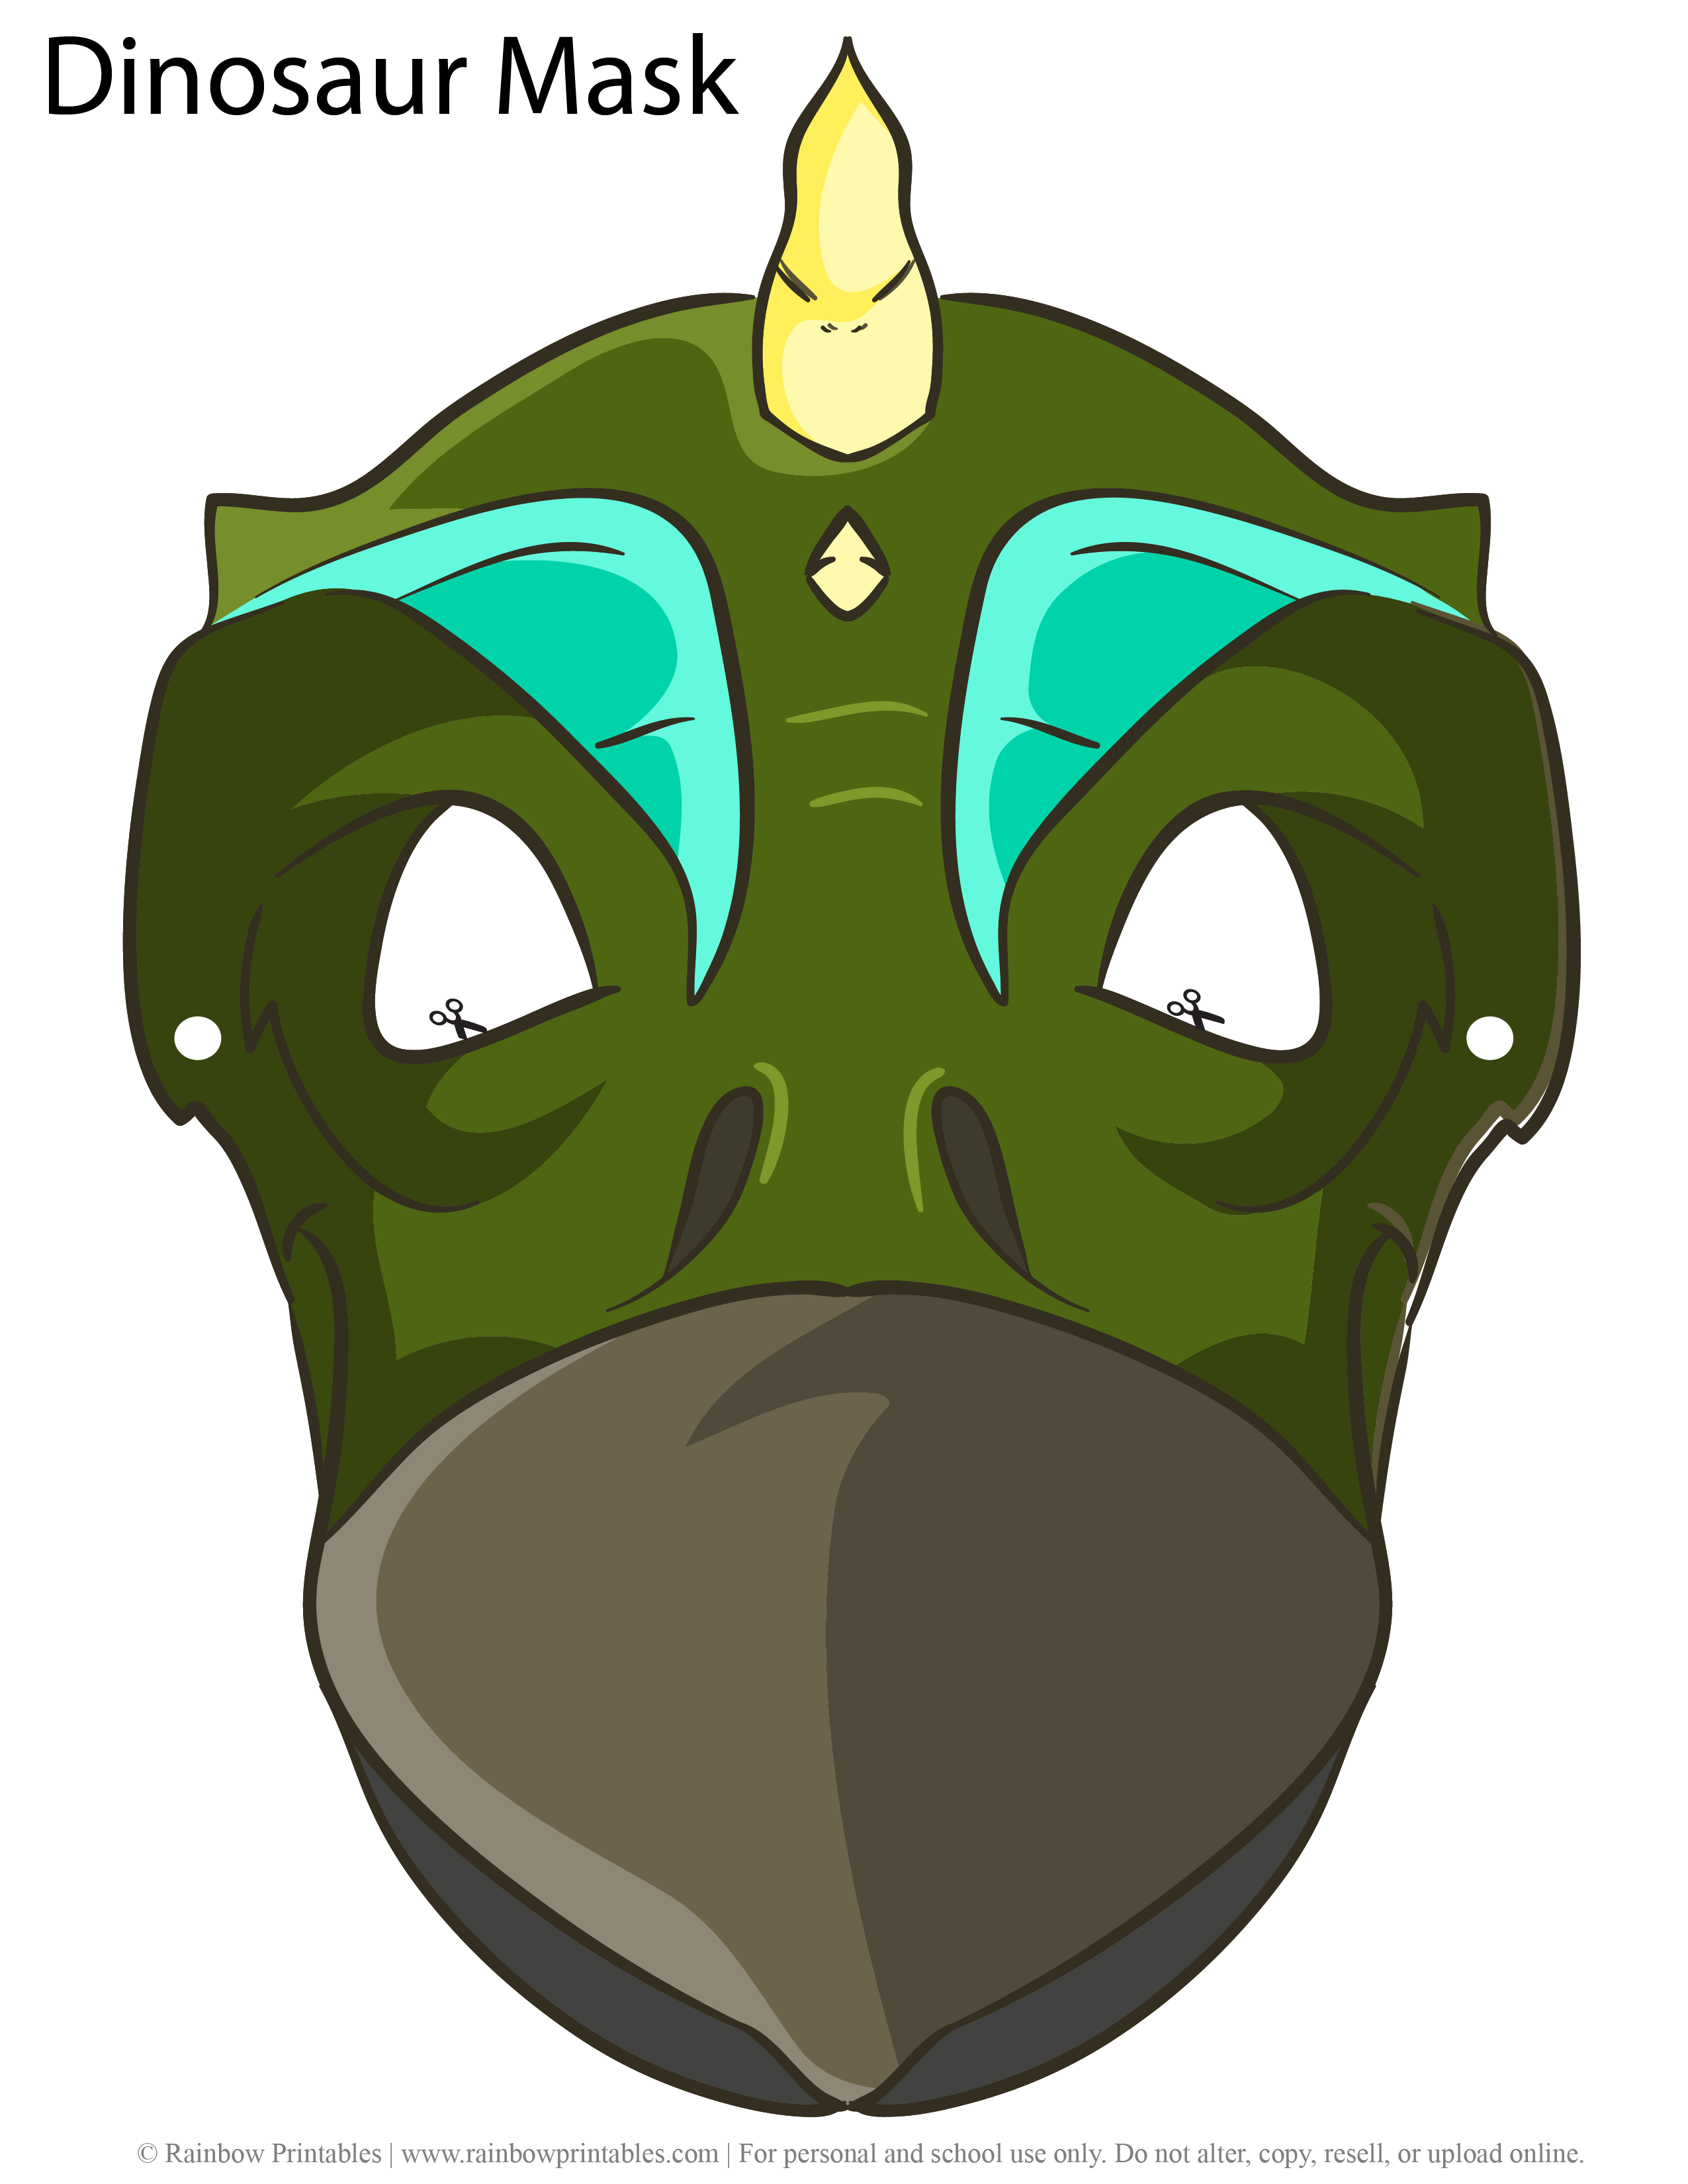 Stegosaurus Face Masks for Kids Costume Pretend Play Paper Printable Dinosaur Dino Colored Mask Character